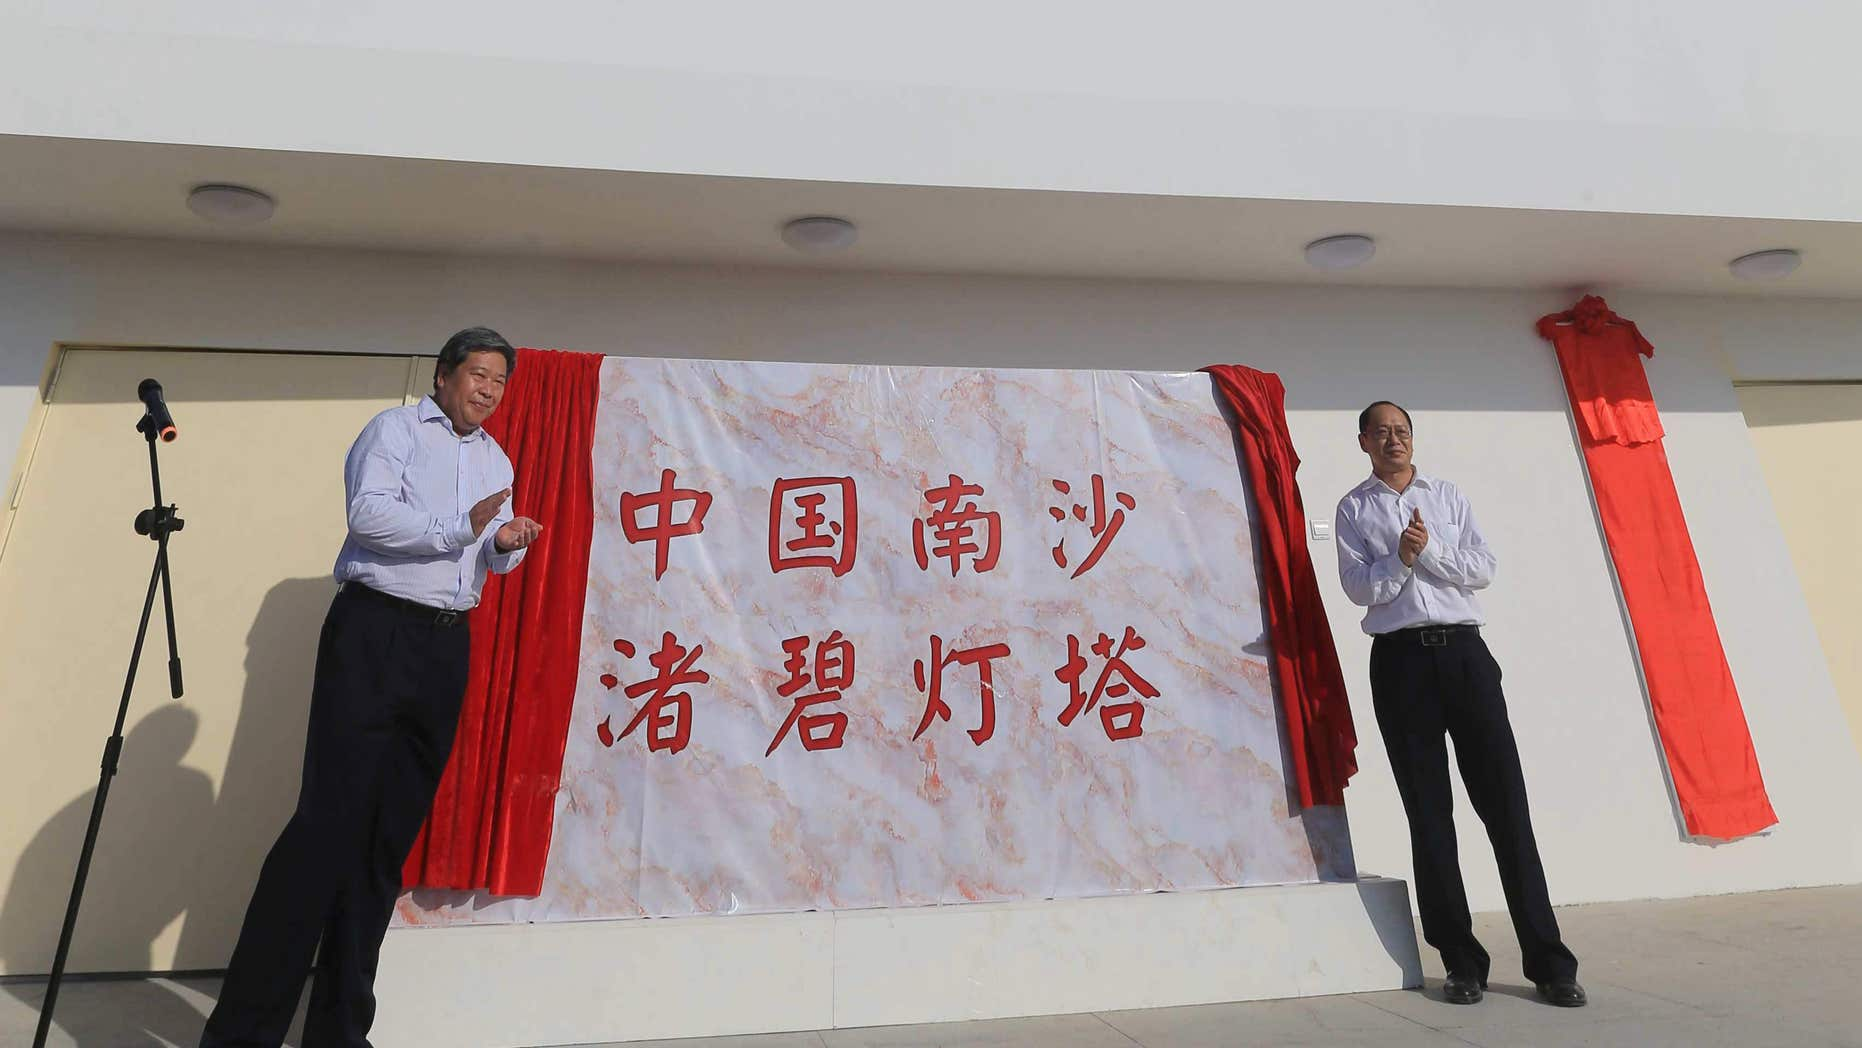 FILE - In this April 5, 2016 file photo provided by China's Xinhua News Agency, guests attend the completion ceremony for the construction of a lighthouse on Zhubi Reef of Nansha Islands, known as the Spratly Islands, in the South China Sea.